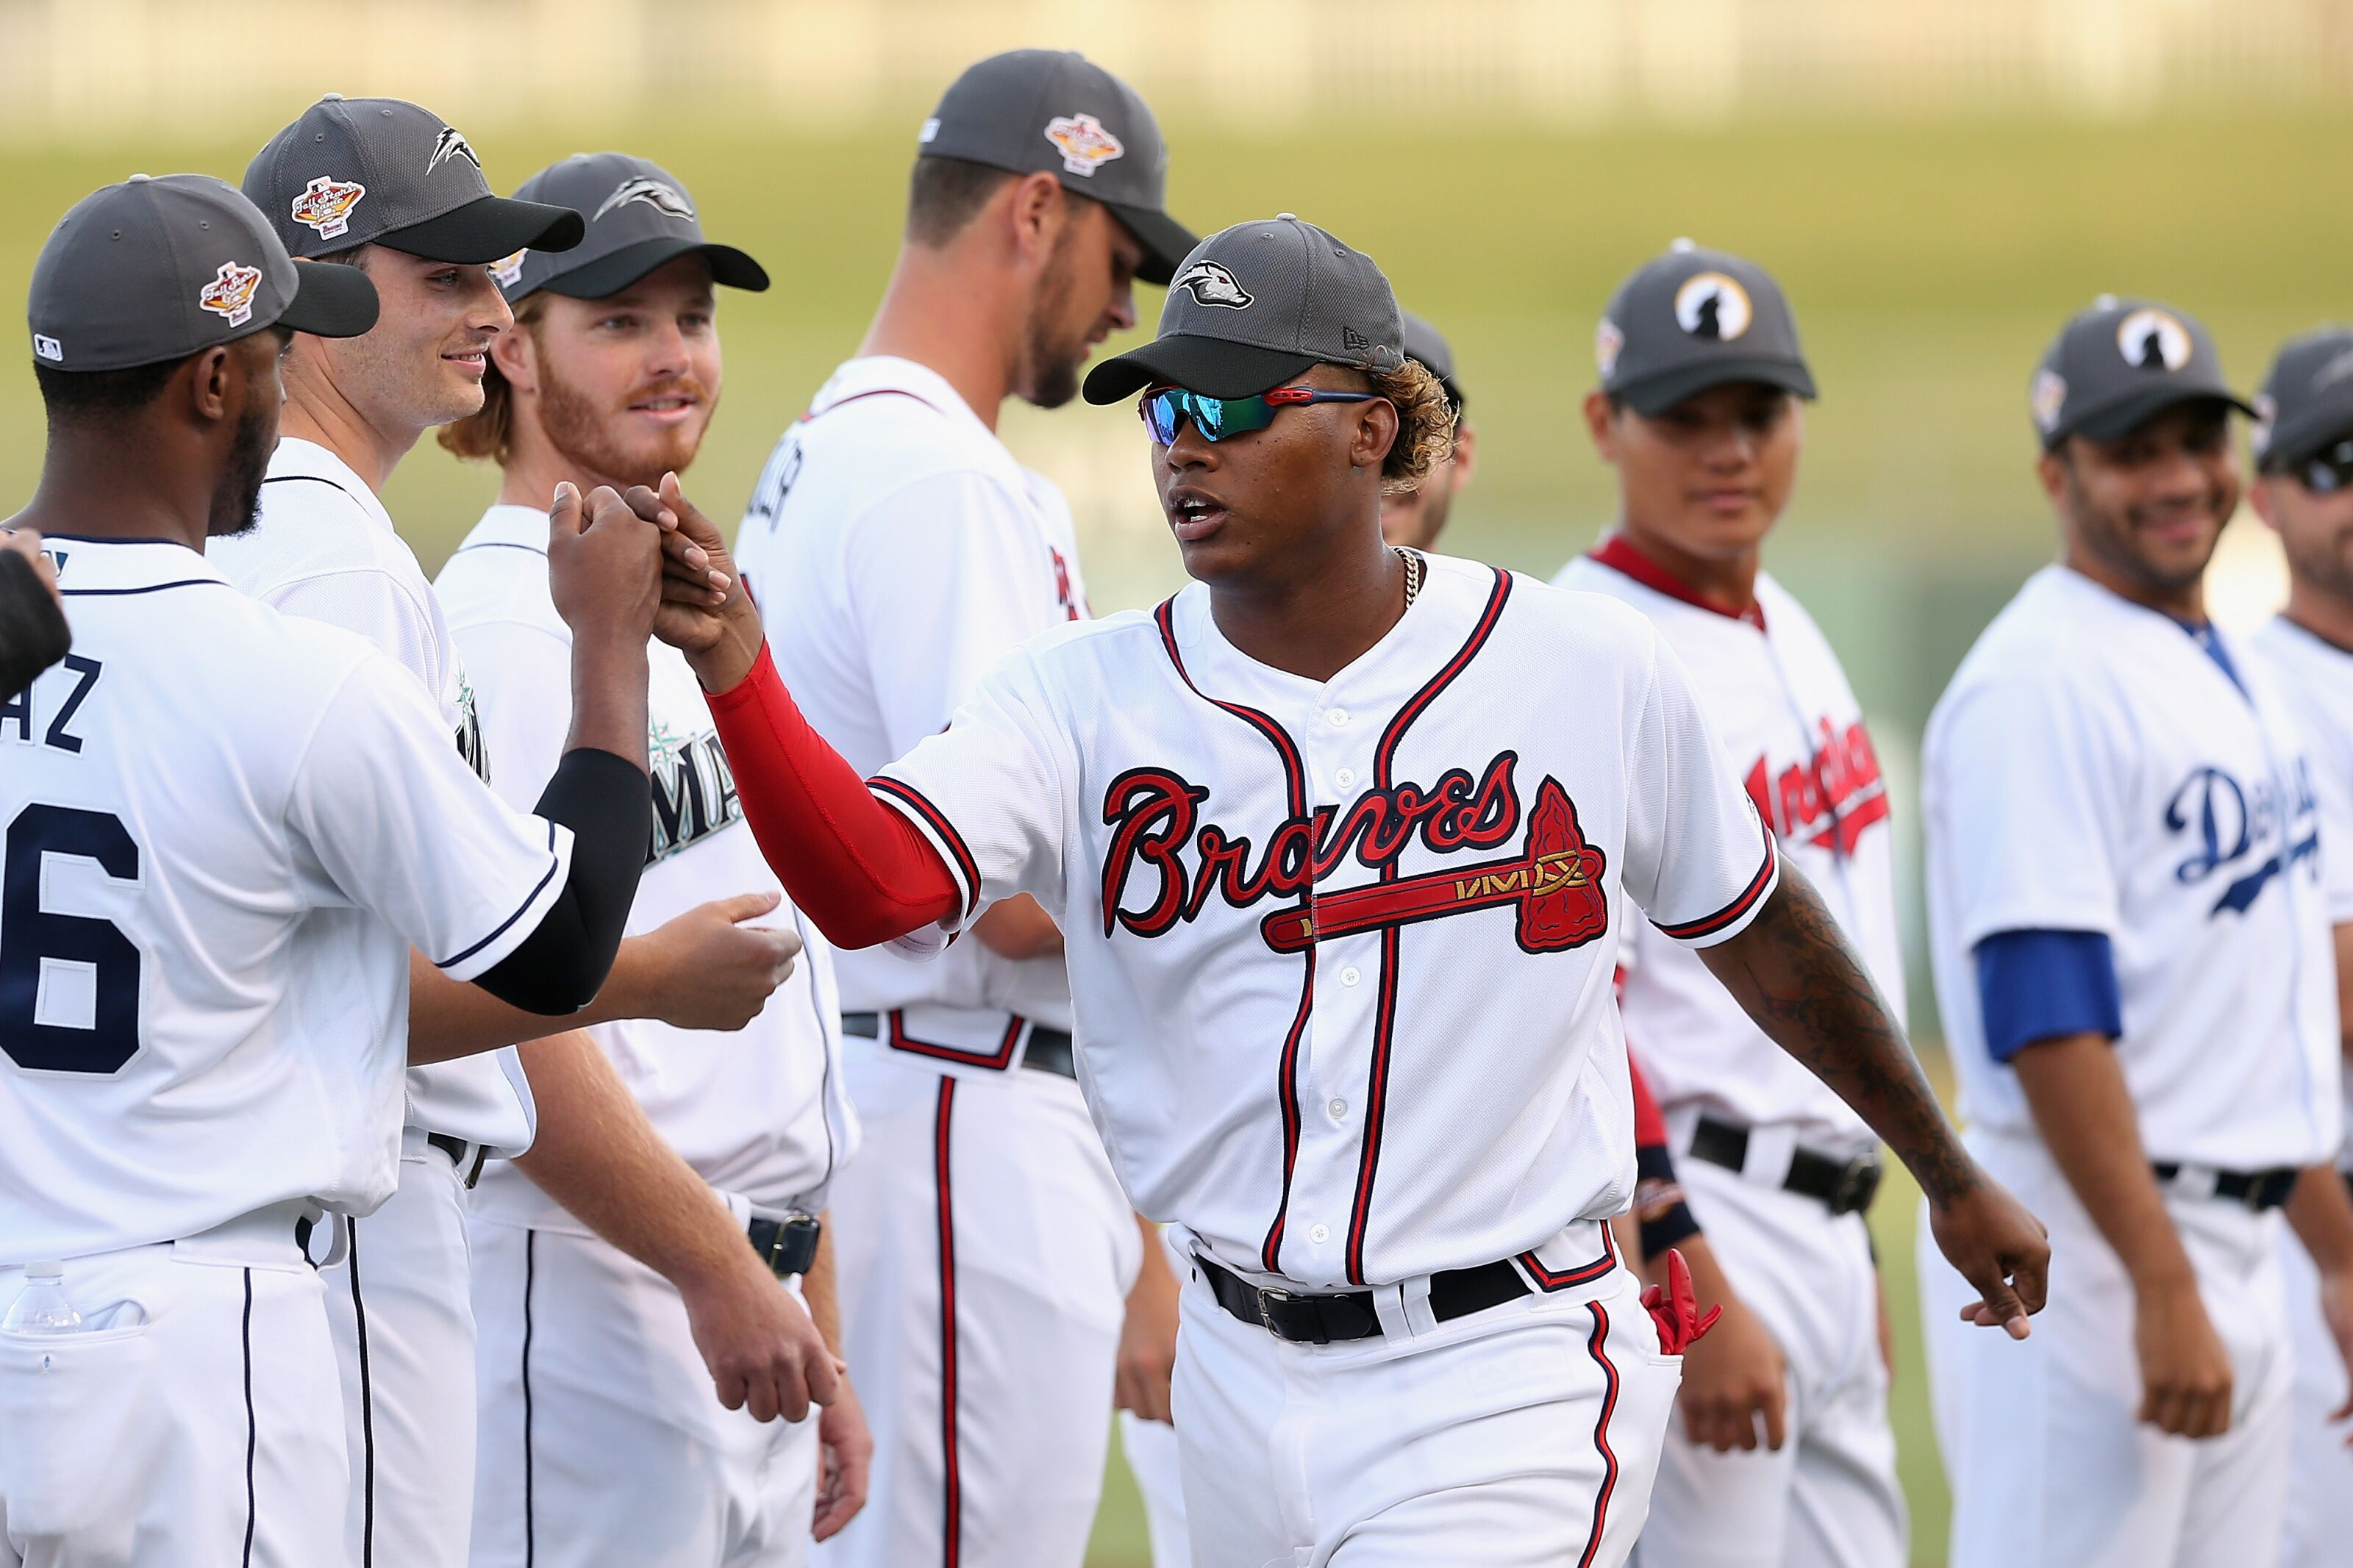 Not just pitchers: The Atlanta Braves have a top-10 position-group in the Minors